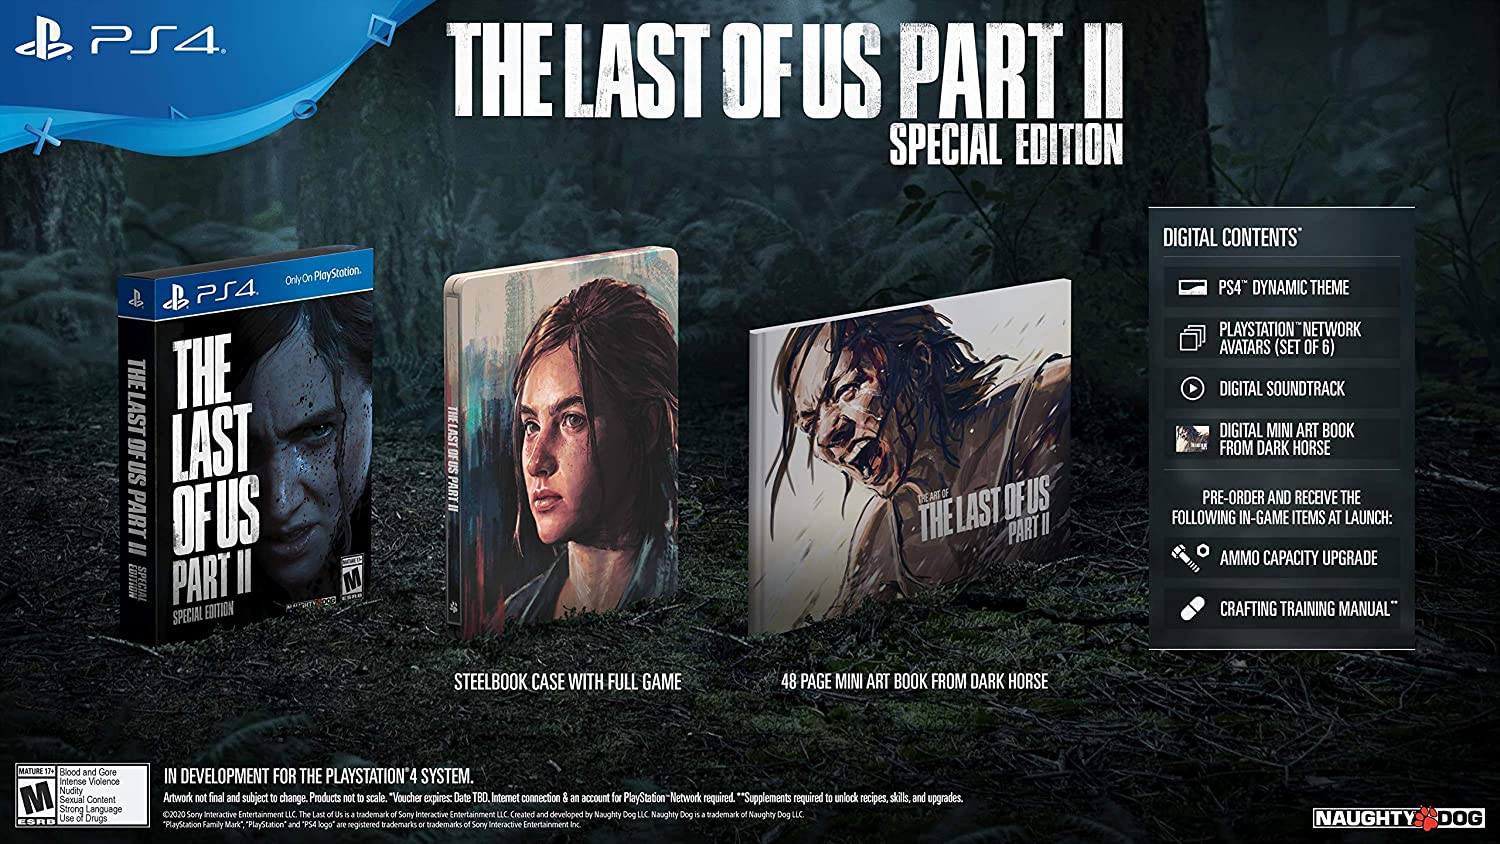 The Last of Us Part II Max 53% OFF Limited price sale 4 Special Edition - PlayStation